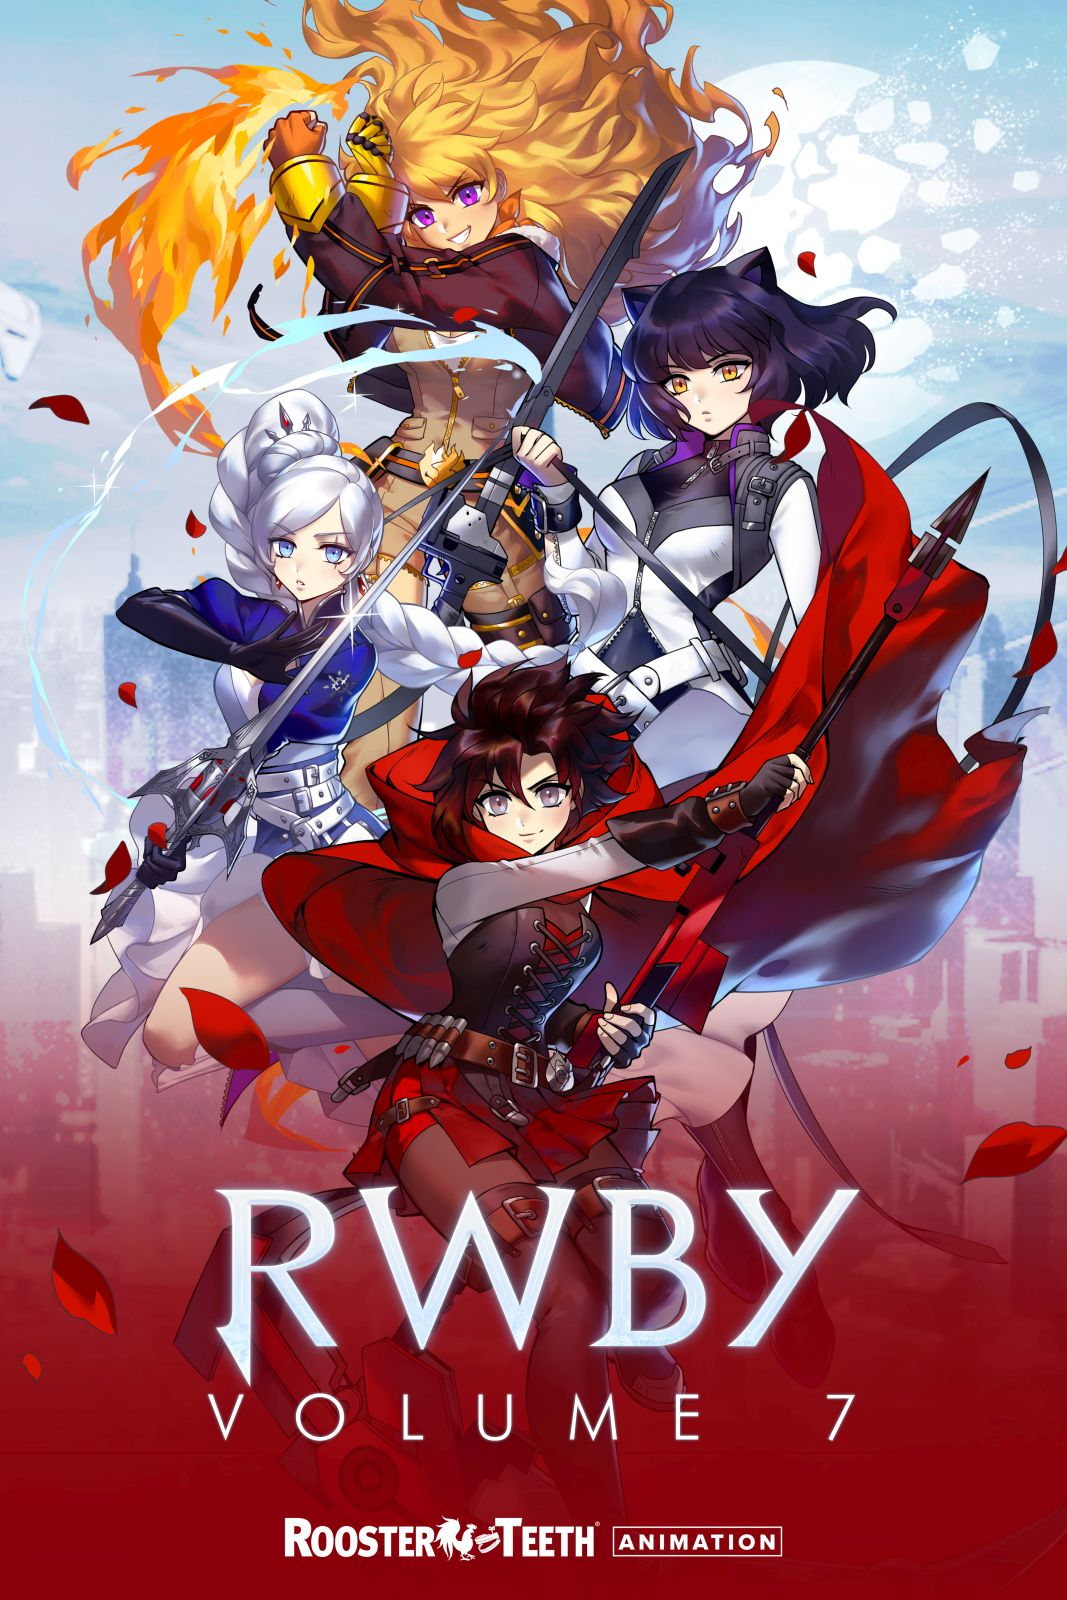 RWBY Volume 7 Is Coming in November and We Have a Poster to Share